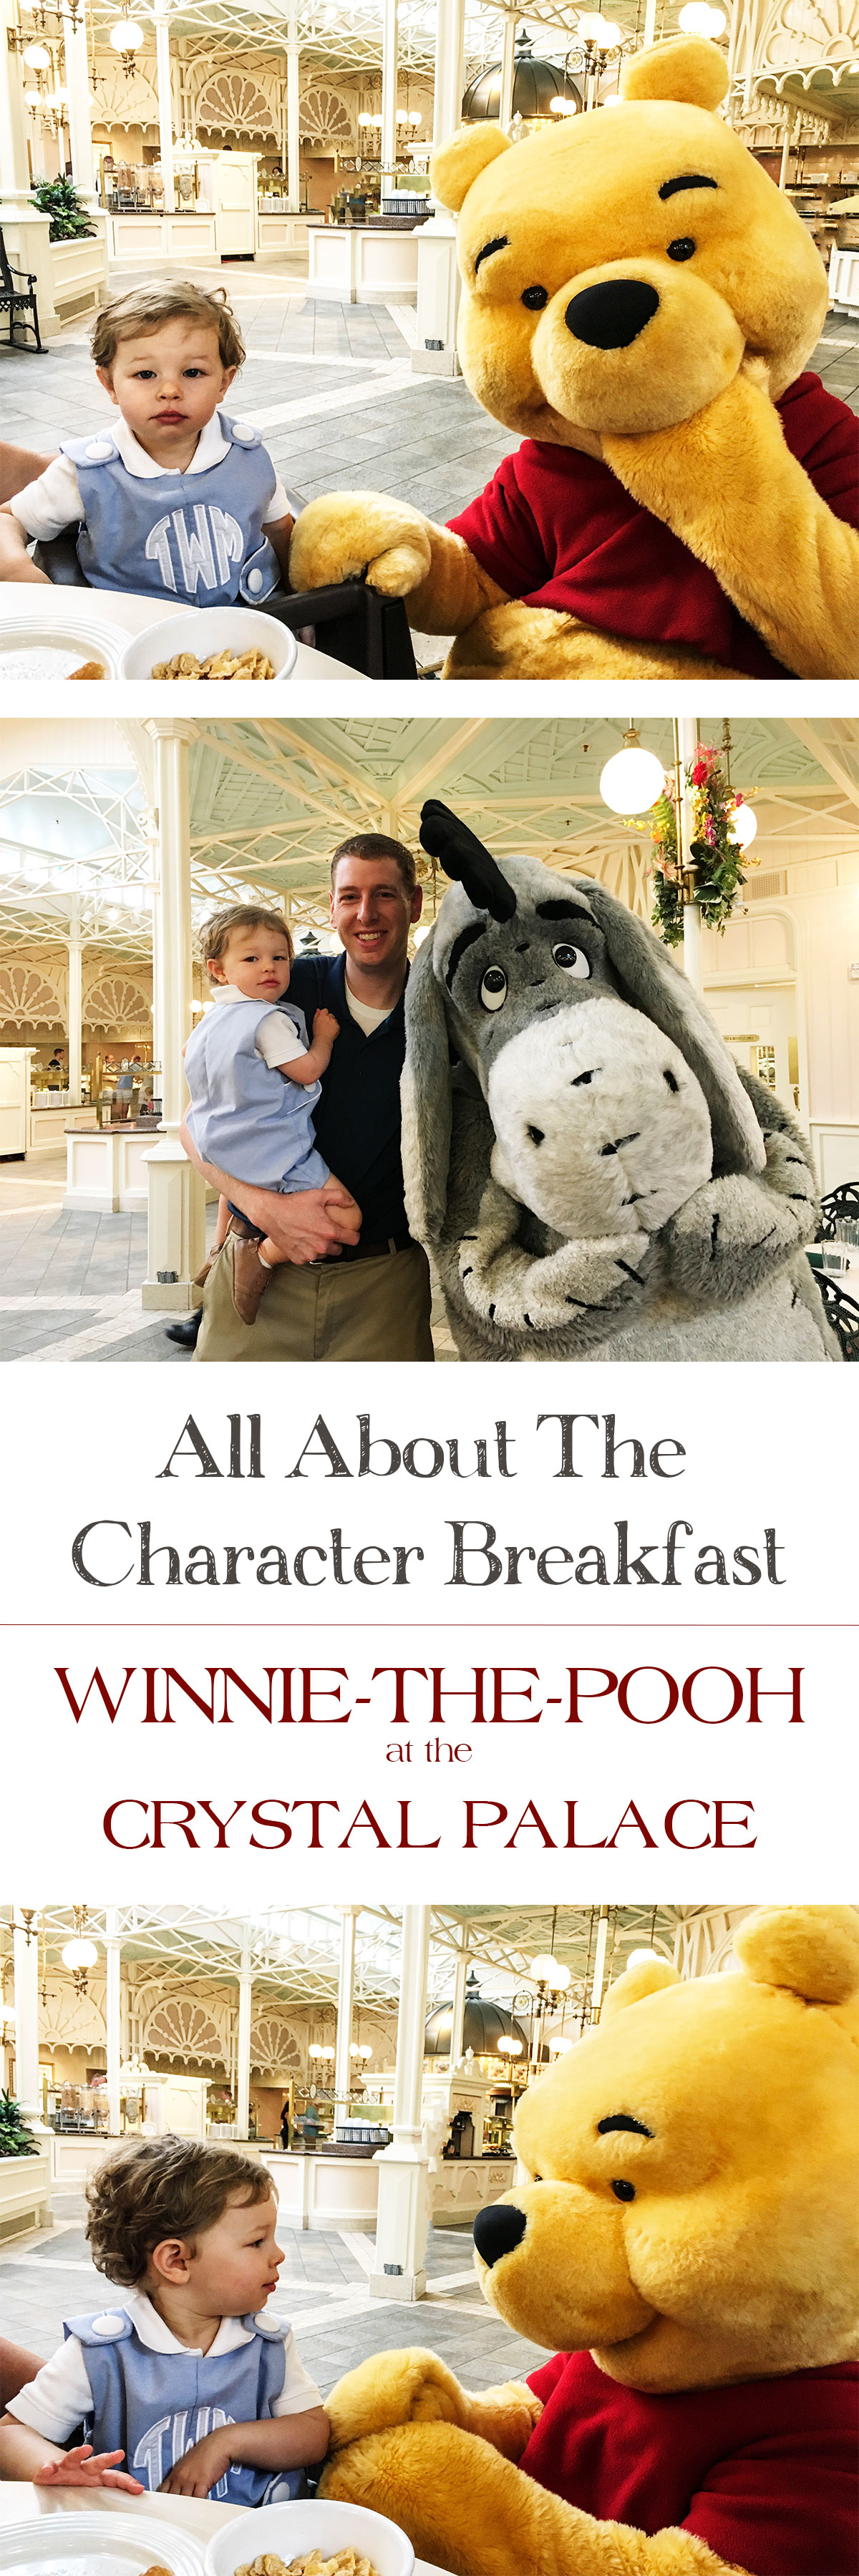 All-About-the-Character-Breakfast-Winnie-the-Pooh-Crystal-Palace